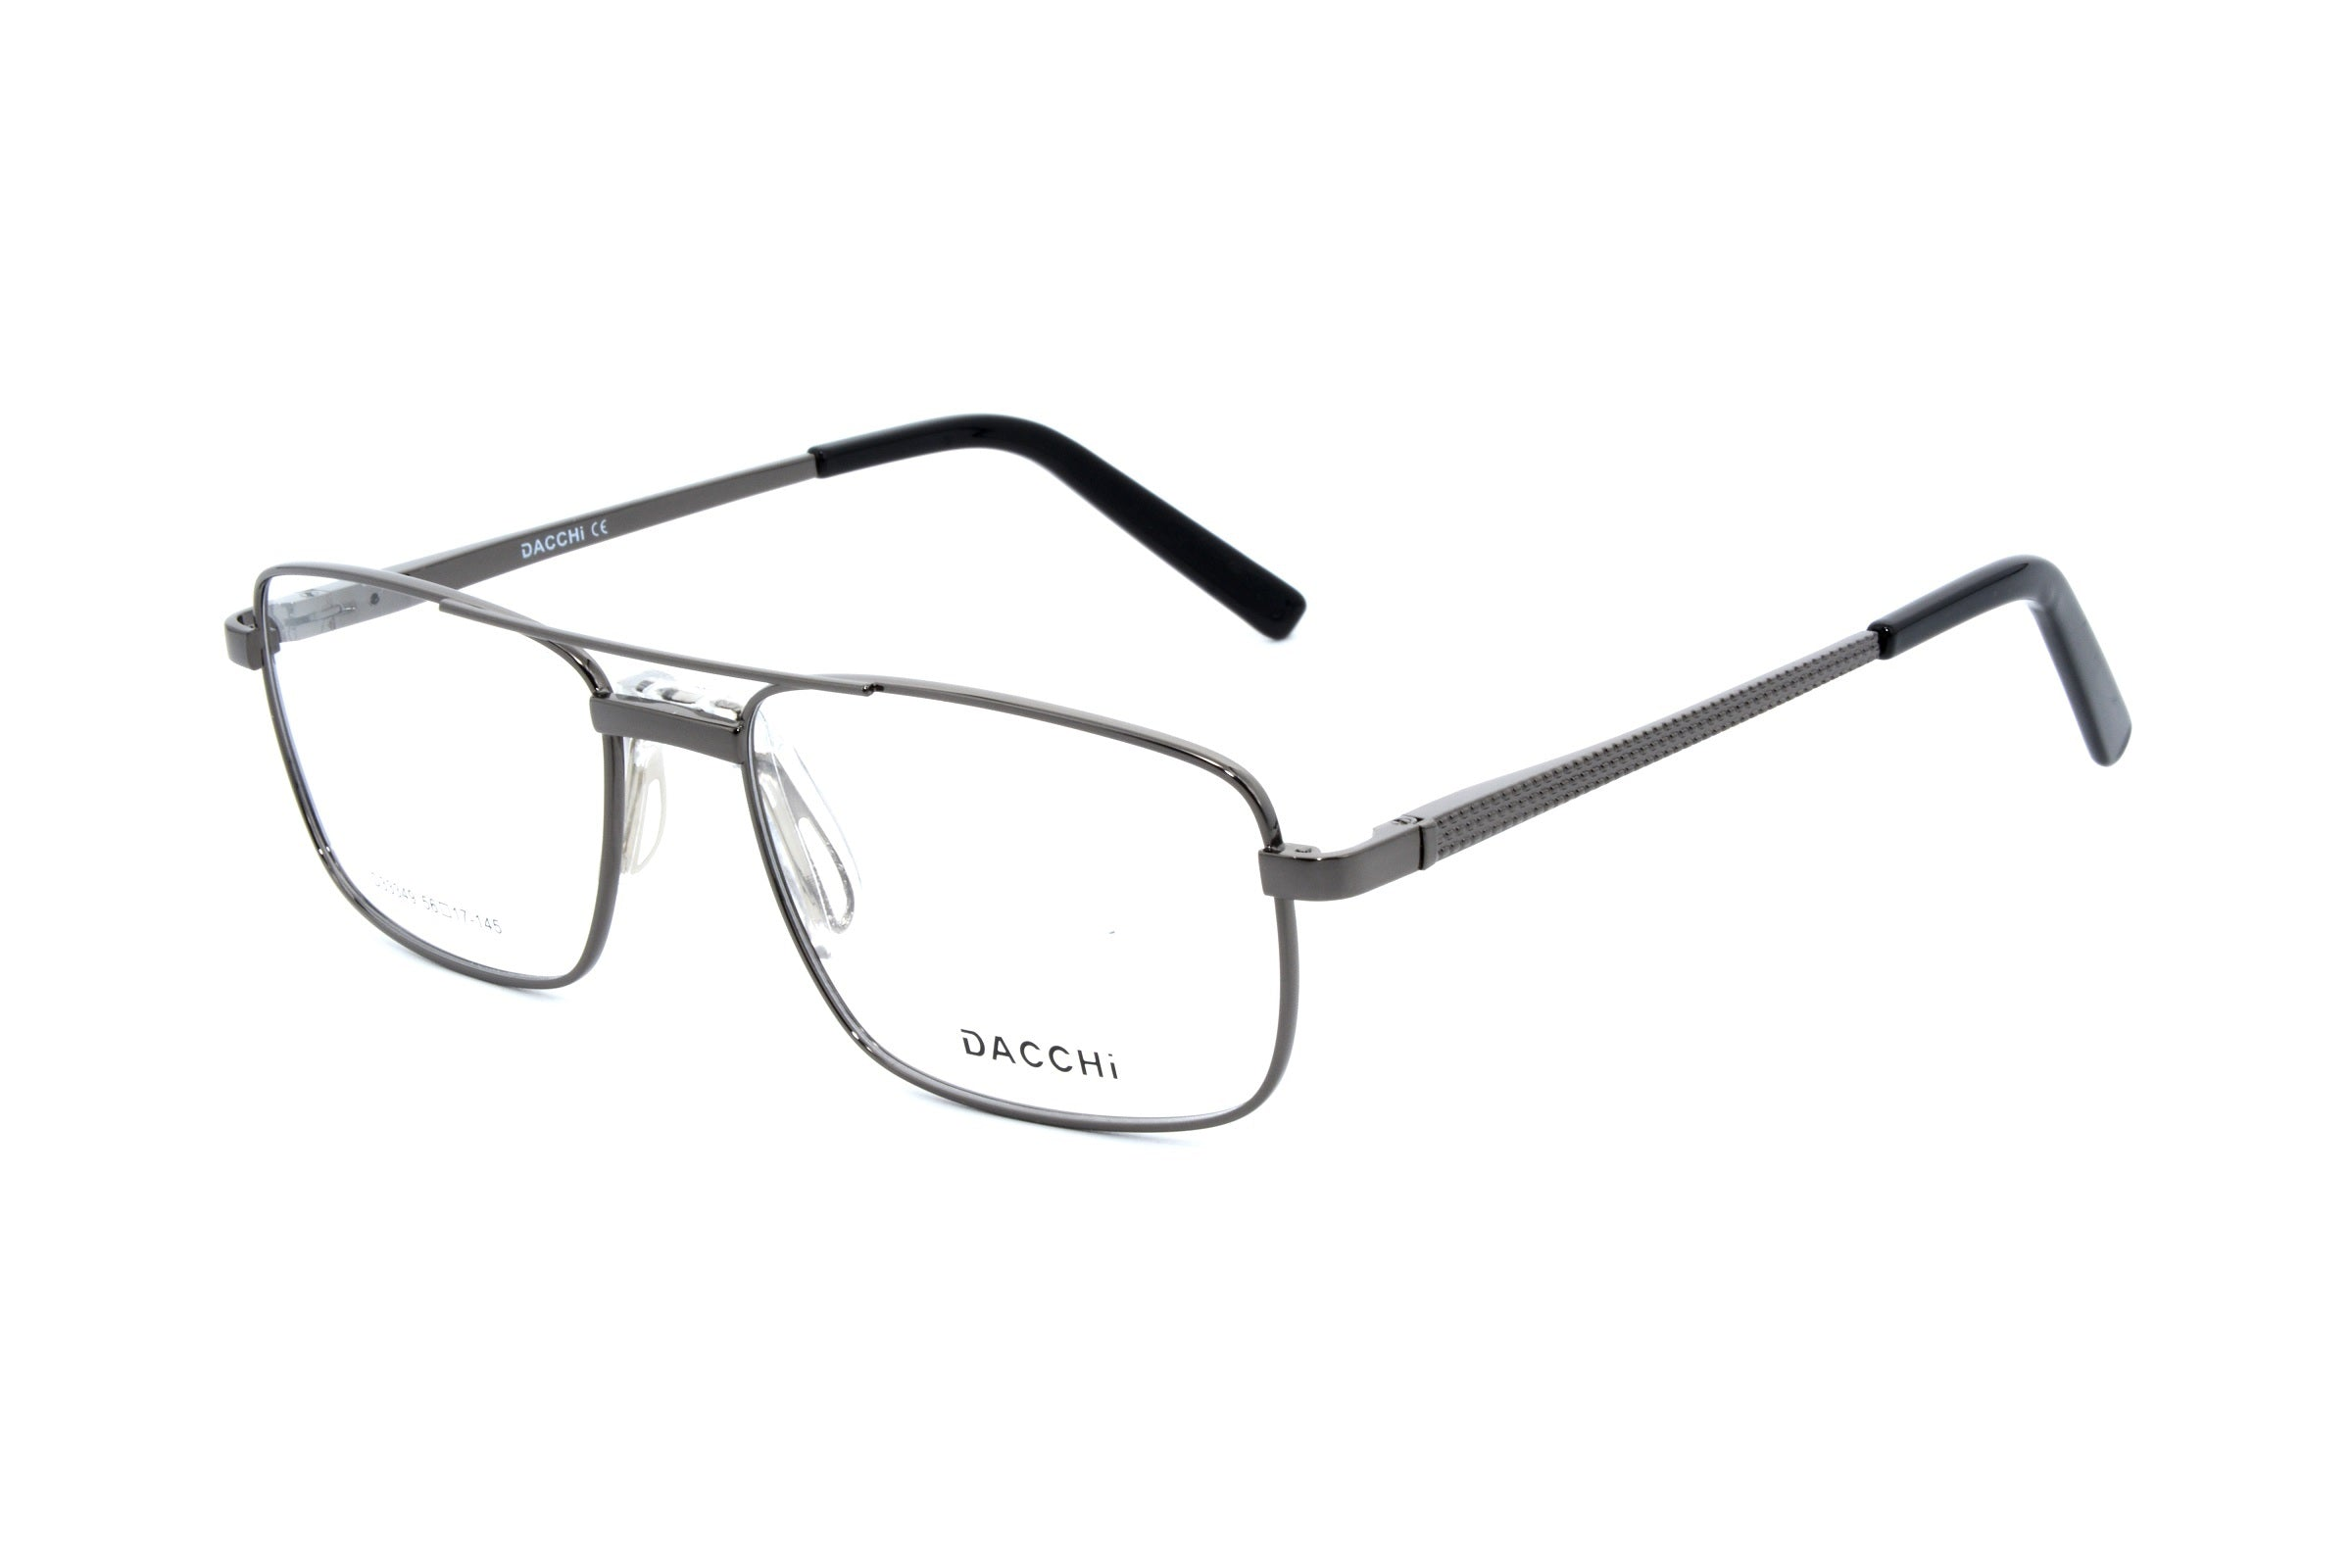 Dacchi eyewear 33349, C3 - Optics Trading